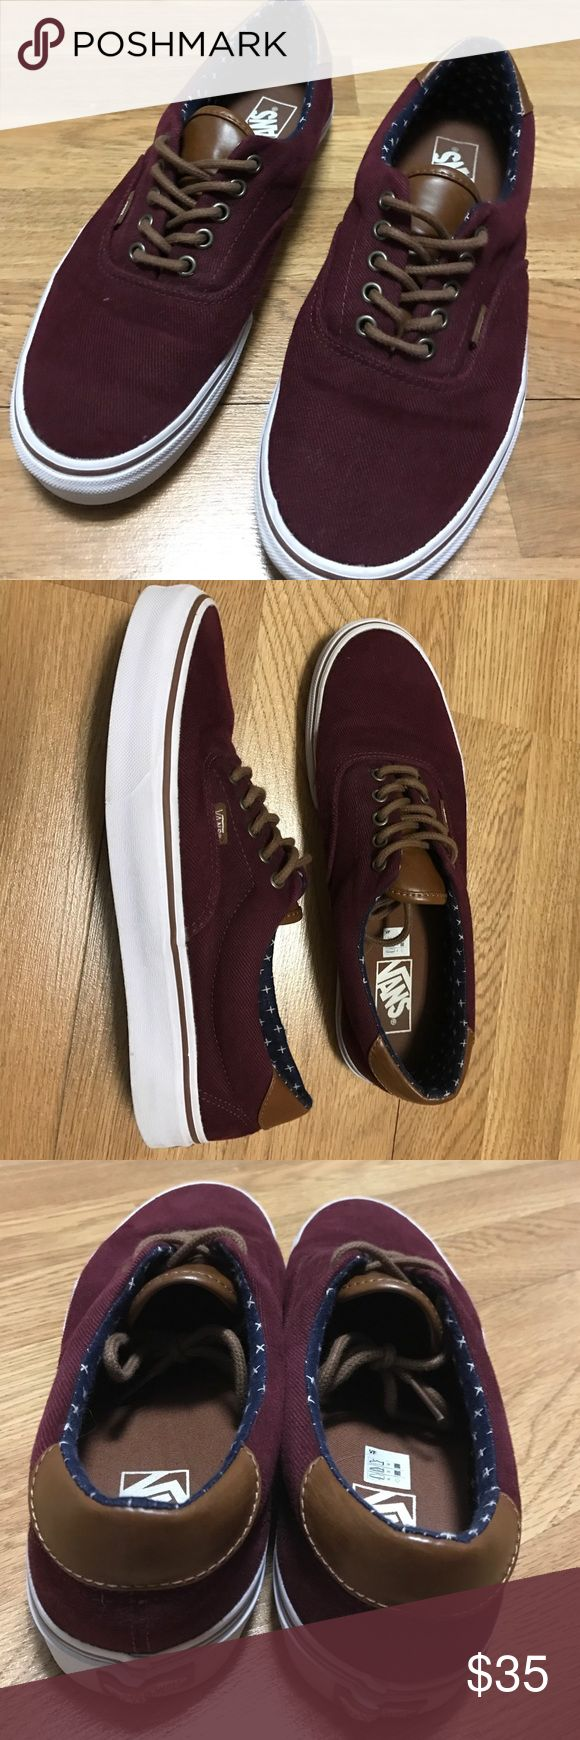 Maroon vans Maroon vans.  Only worn a few times. Only a few unnoticeable specs here and there. Overall, fantastic condition! Vans Shoes